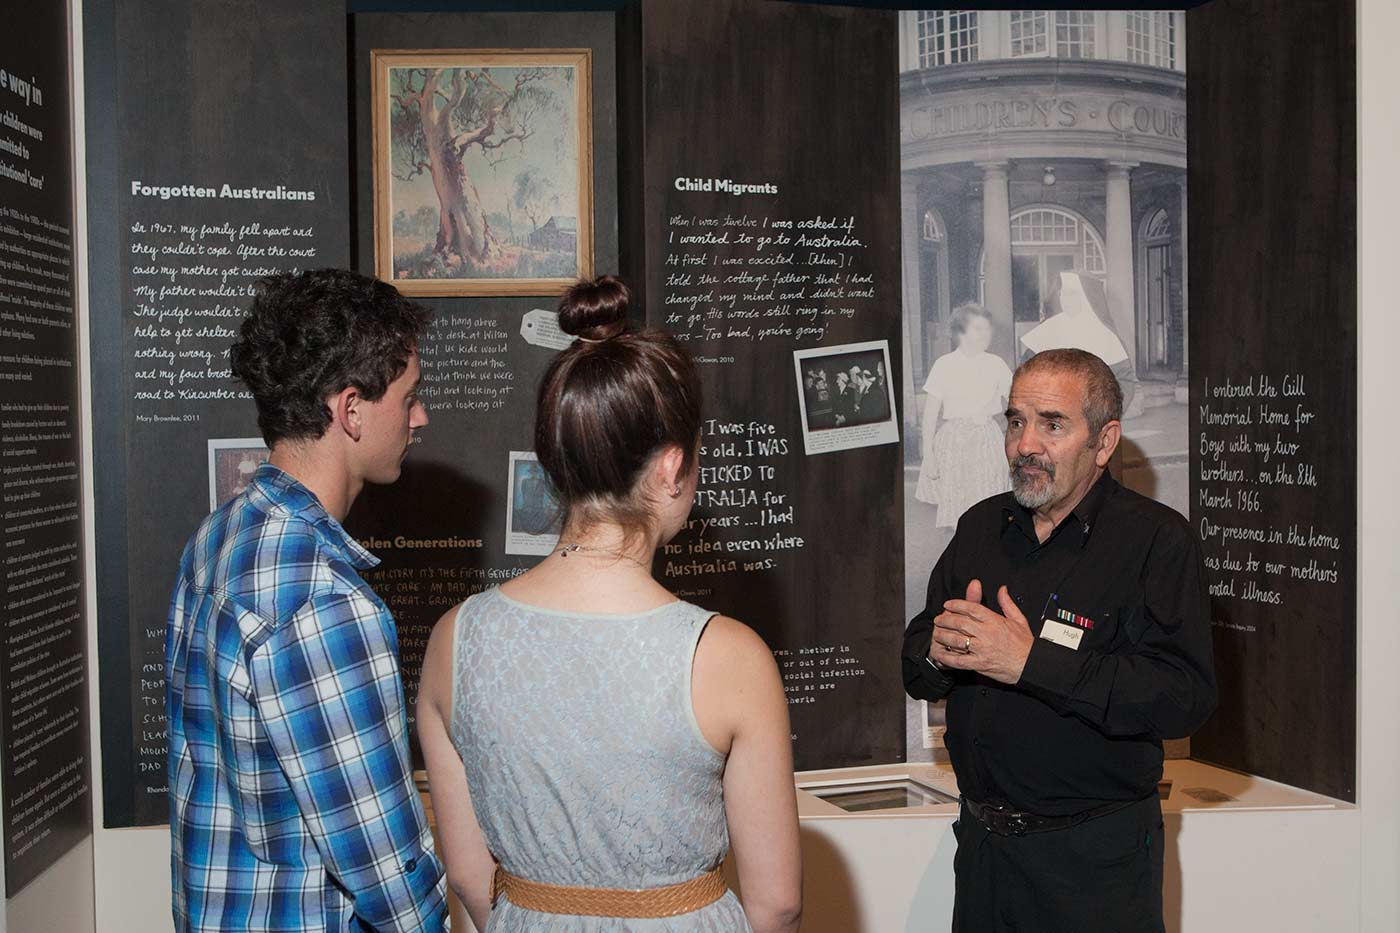 Colour photograph showing a man standing in front of a museum display. Two young people, their backs to the camera, talk with the man. - click to view larger image